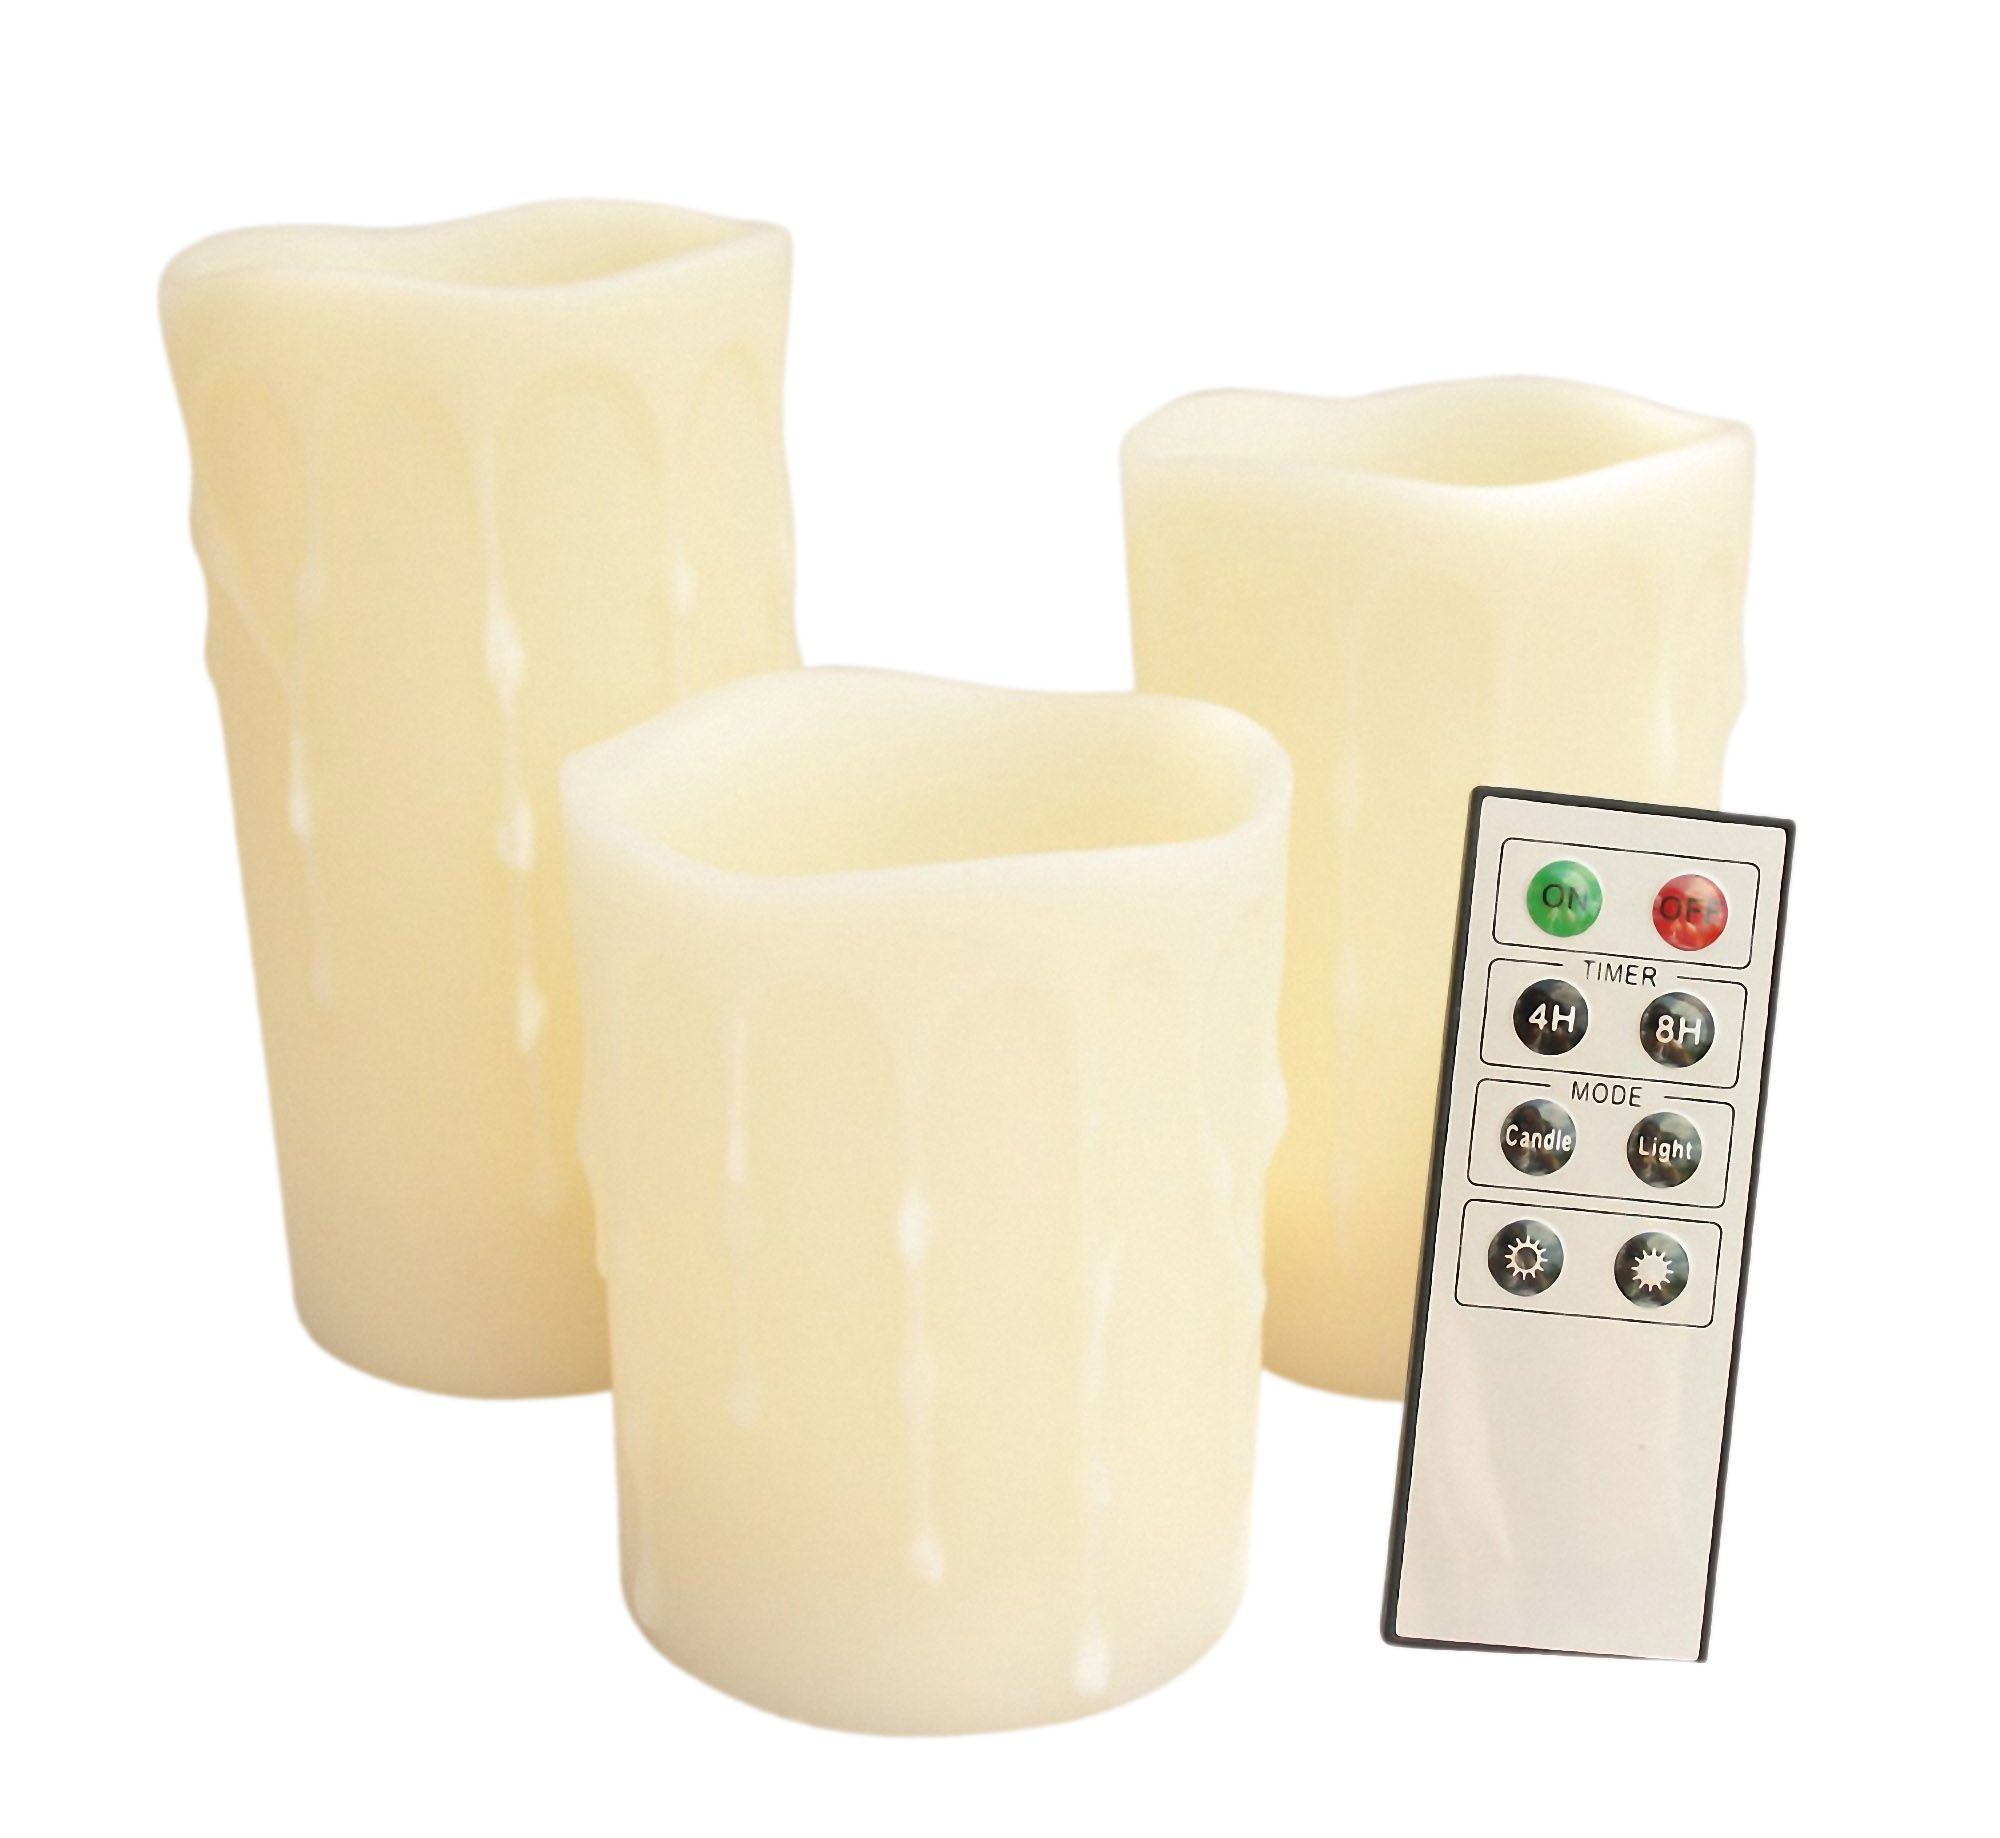 "Candle Choice Set of 3 Remote Control Wax Pillar LED Candles with Melted Edge Wax Drip Effect - 4"",5"" and 6"" tall"